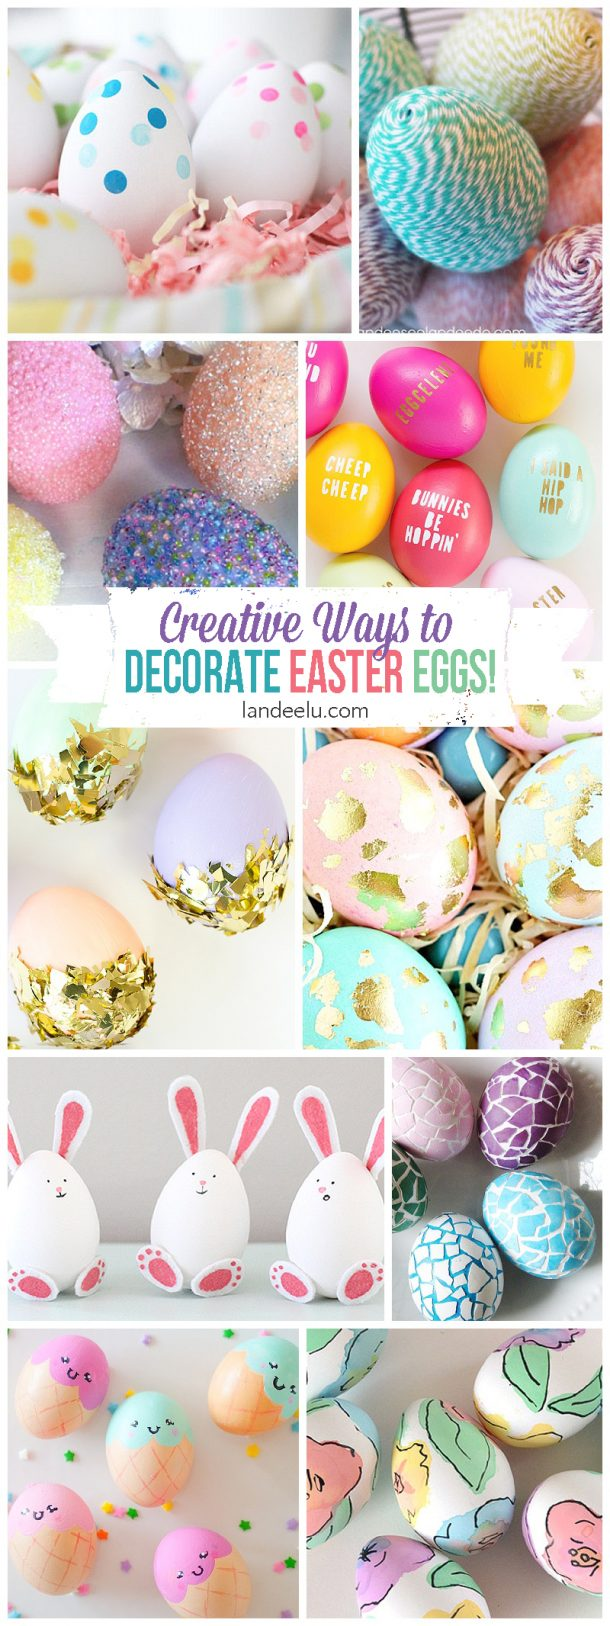 I Love All Of These Easter Egg Designs! I Want To Try Them All But